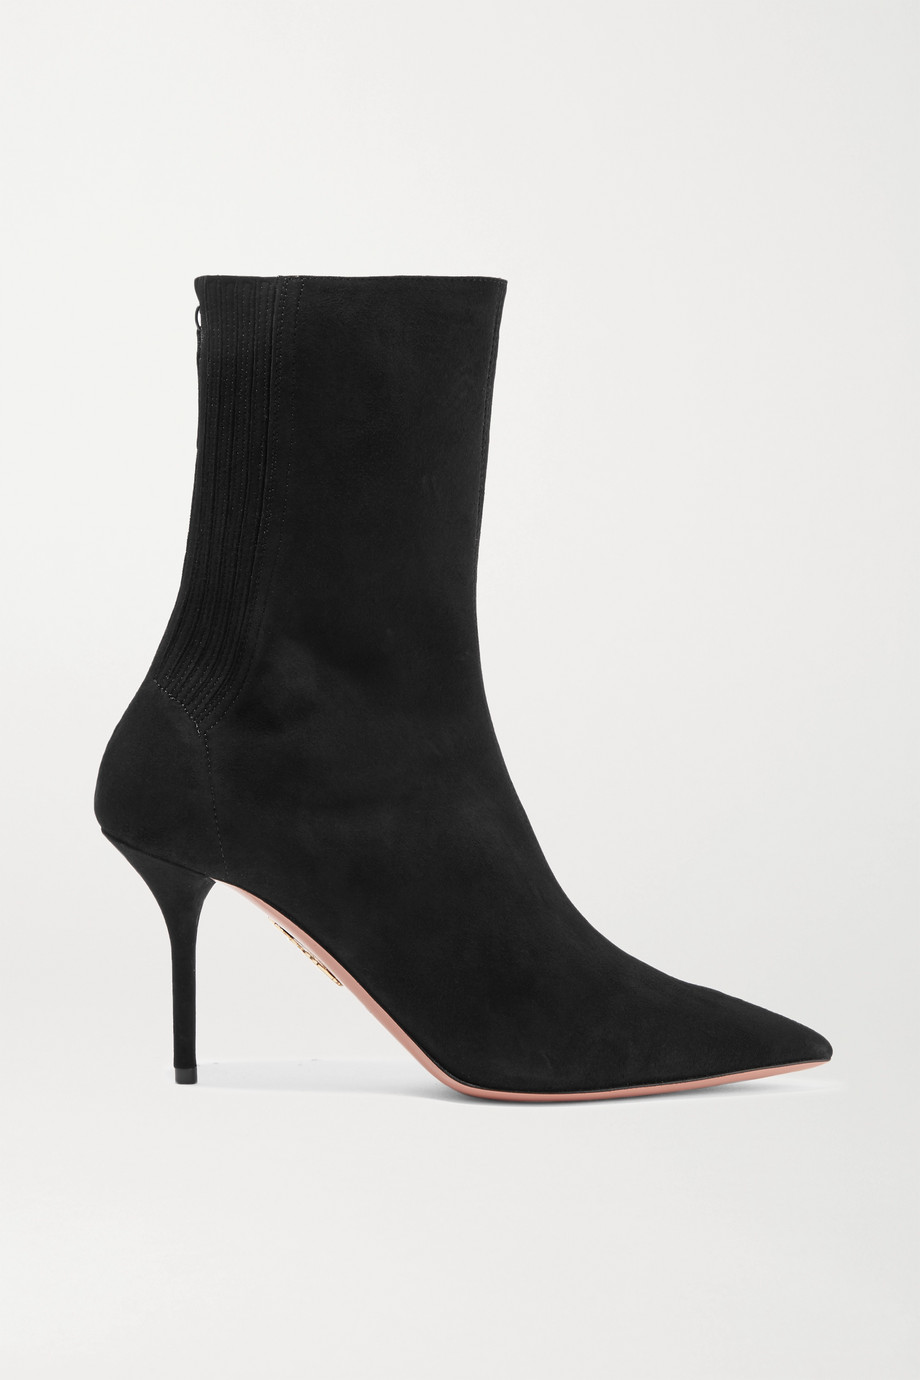 Aquazzura Saint Honore 85 suede sock boots